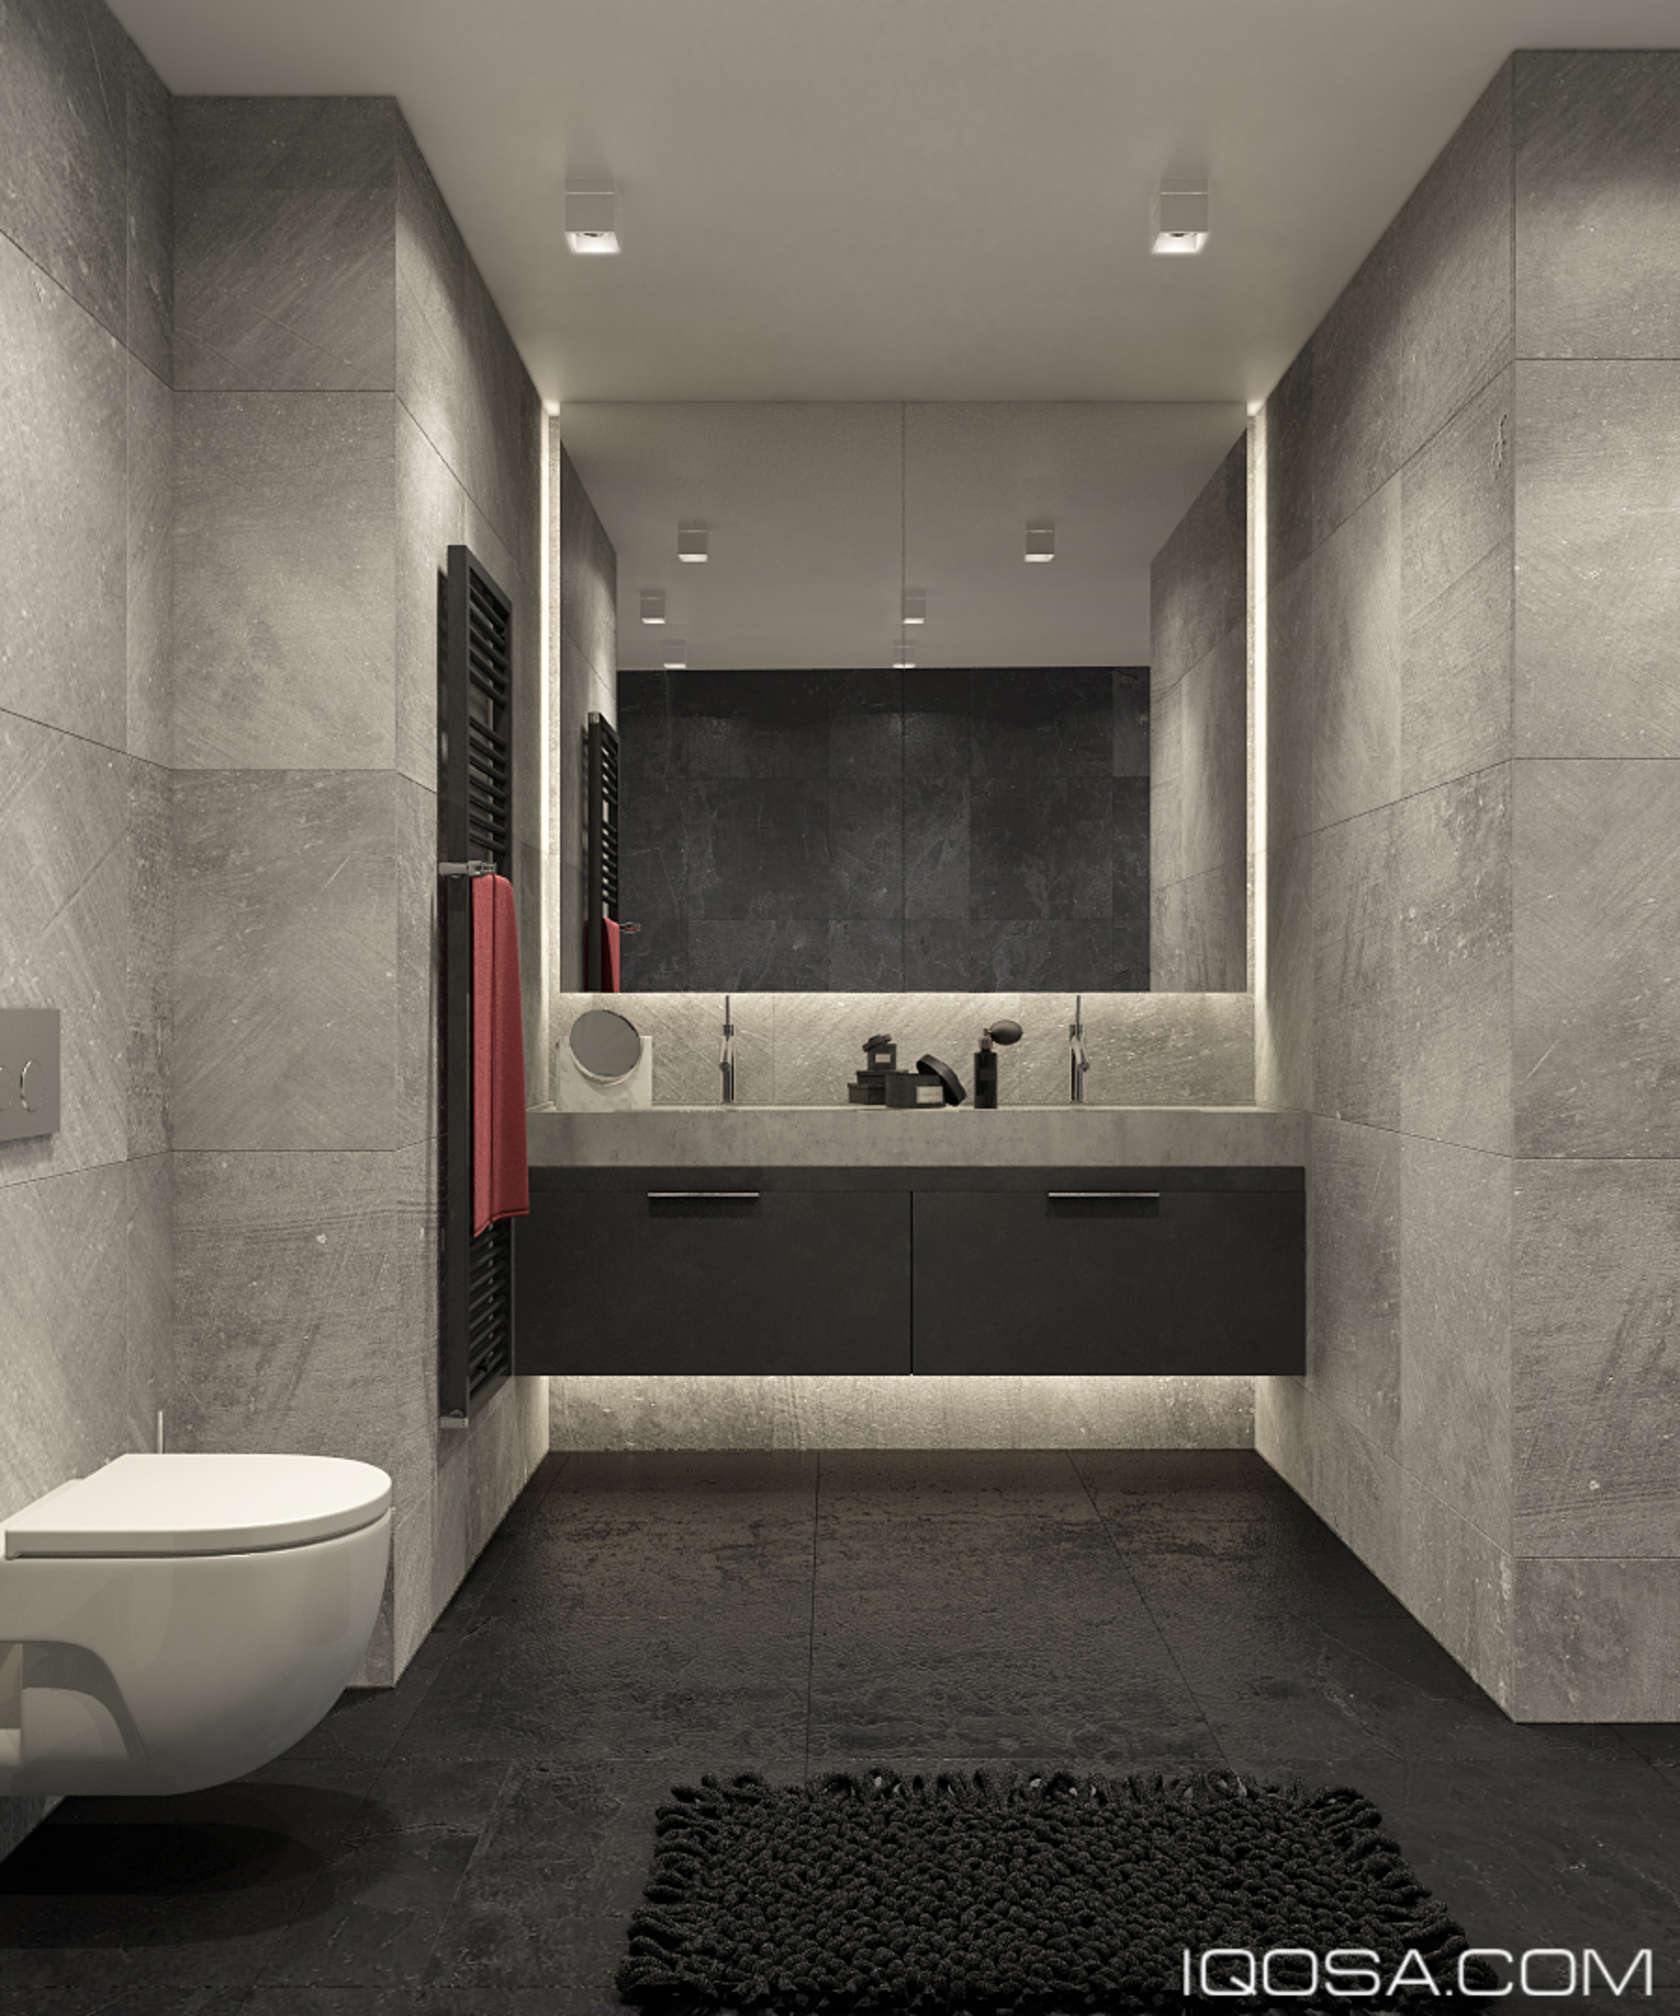 35 Awesome Small Bathroom Ideas For Apartment: Luxury Small Studio Apartment Design Combined Modern And Minimalist Style Decor Looks Stunning